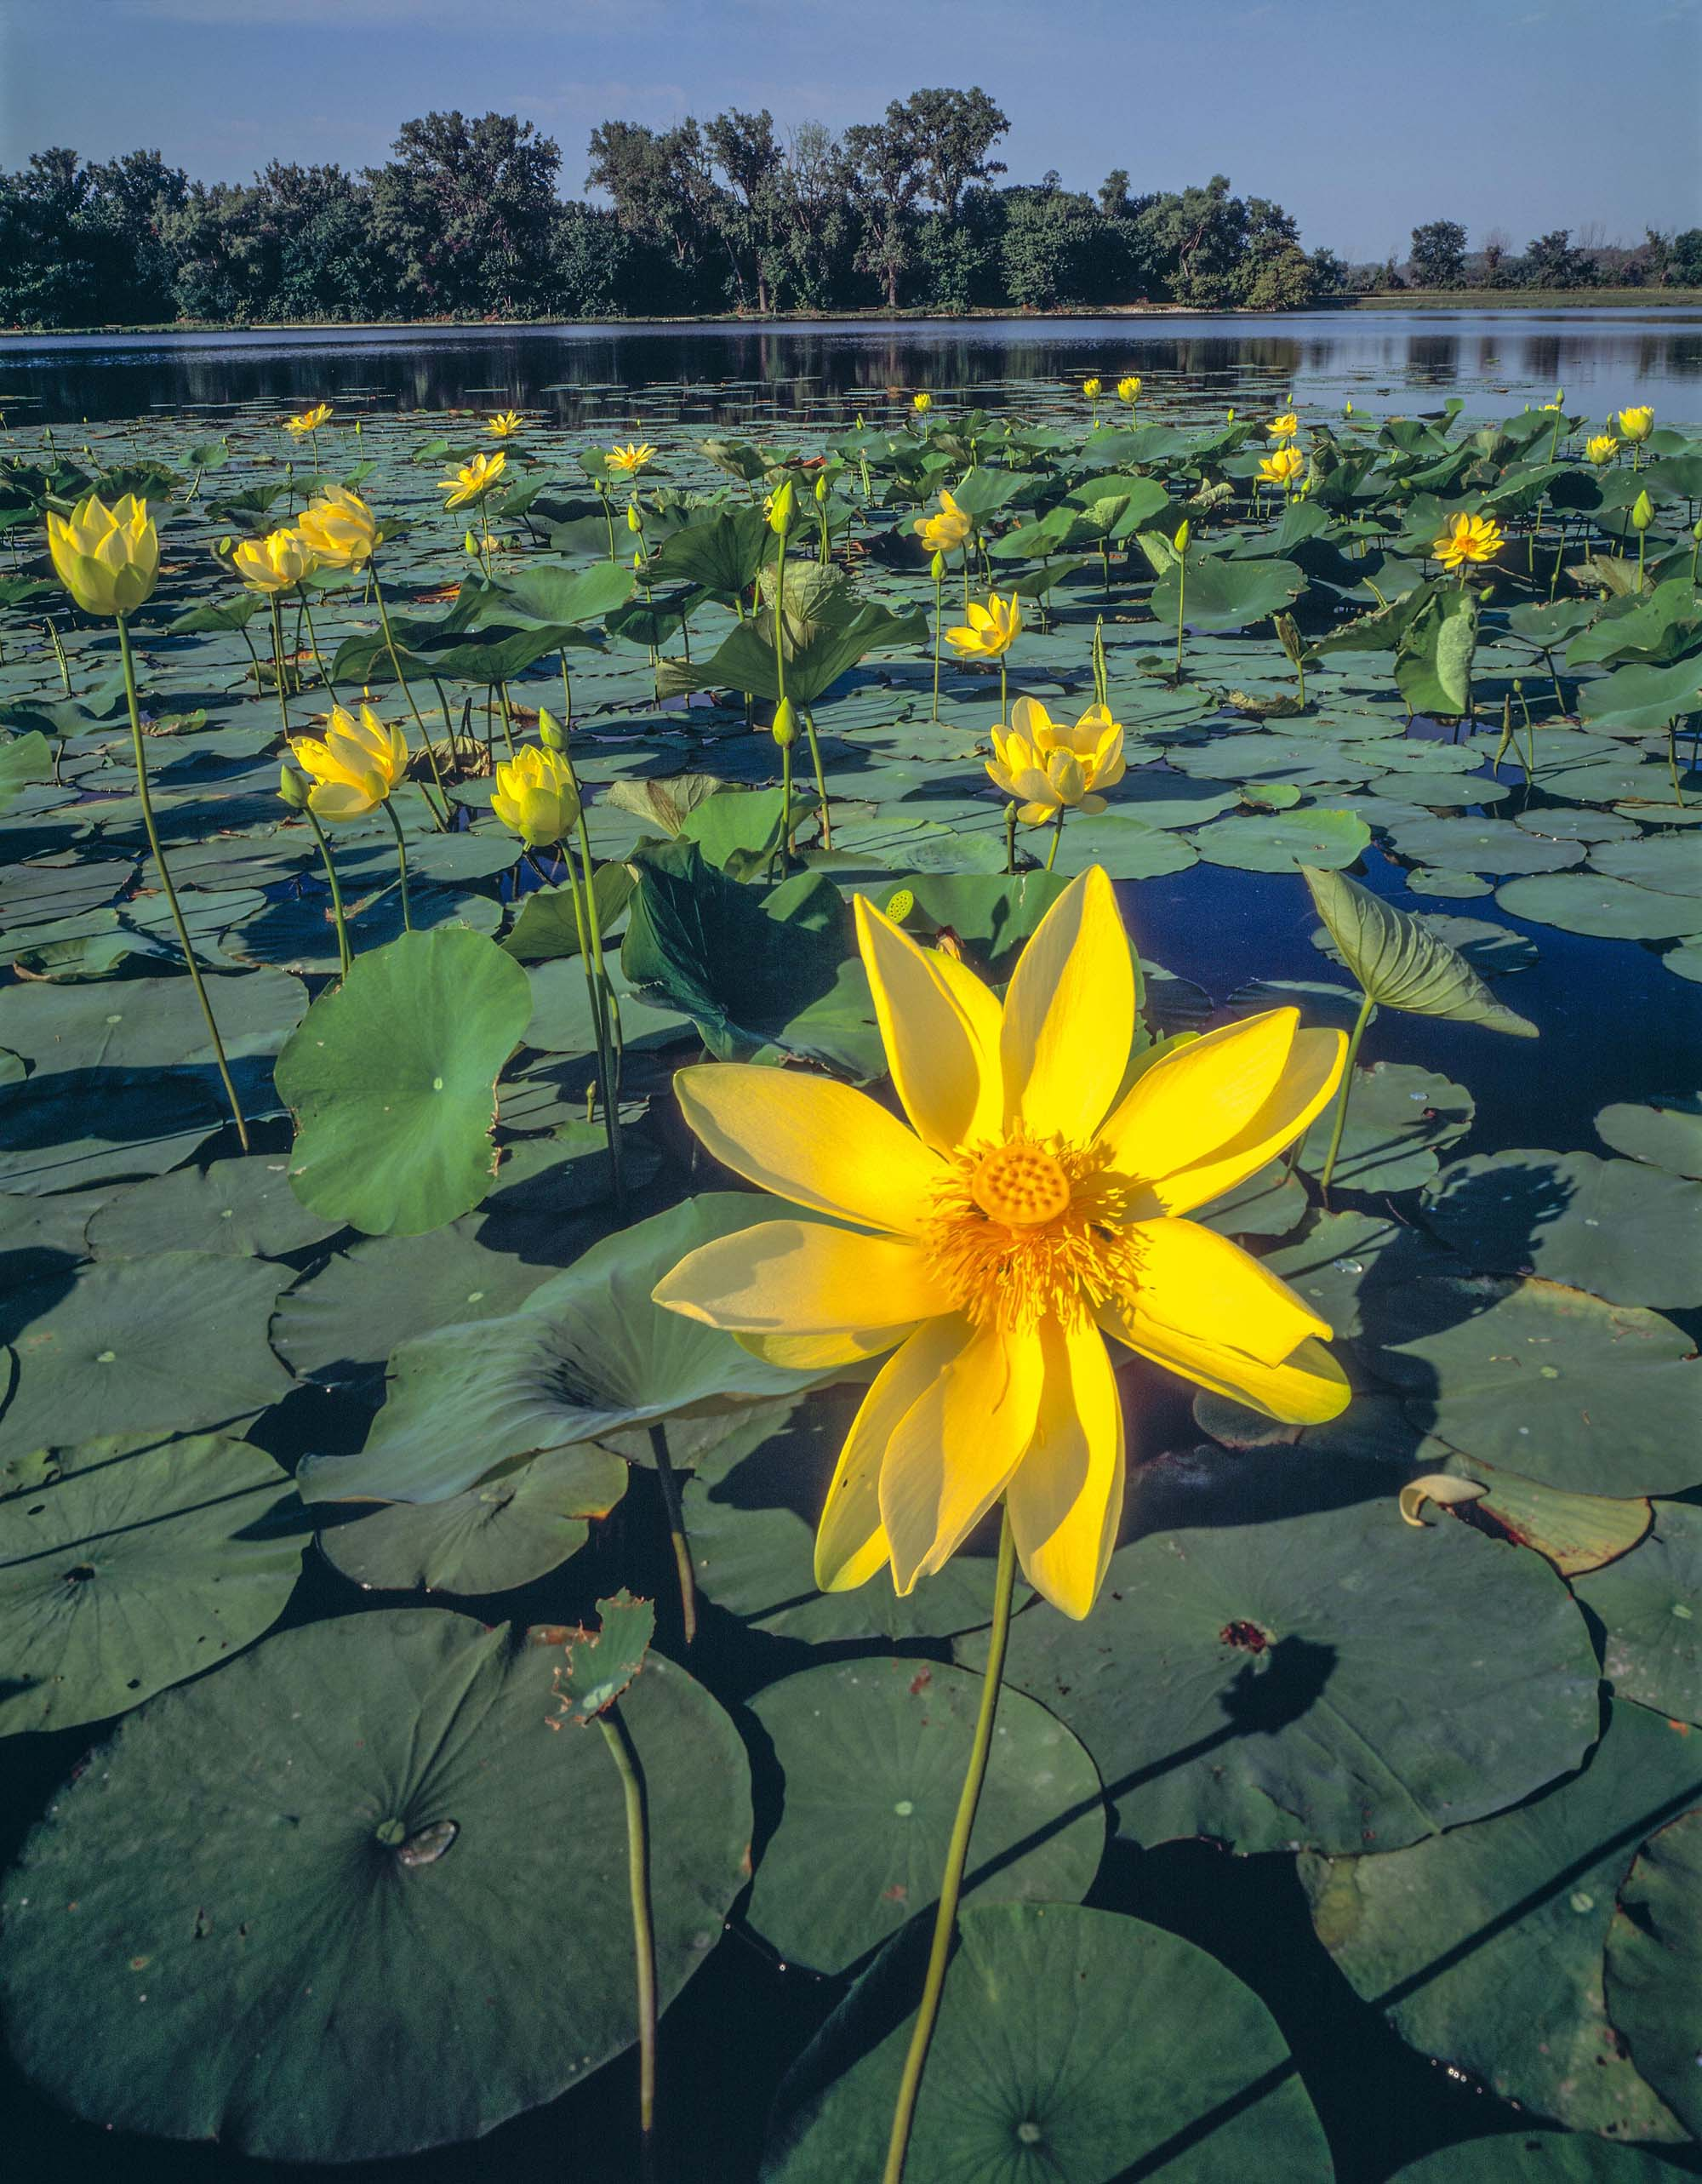 American Lotus Blooms, De Soto National Wildlife Refuge, Missouri River, Iowa photographed by Tom Till